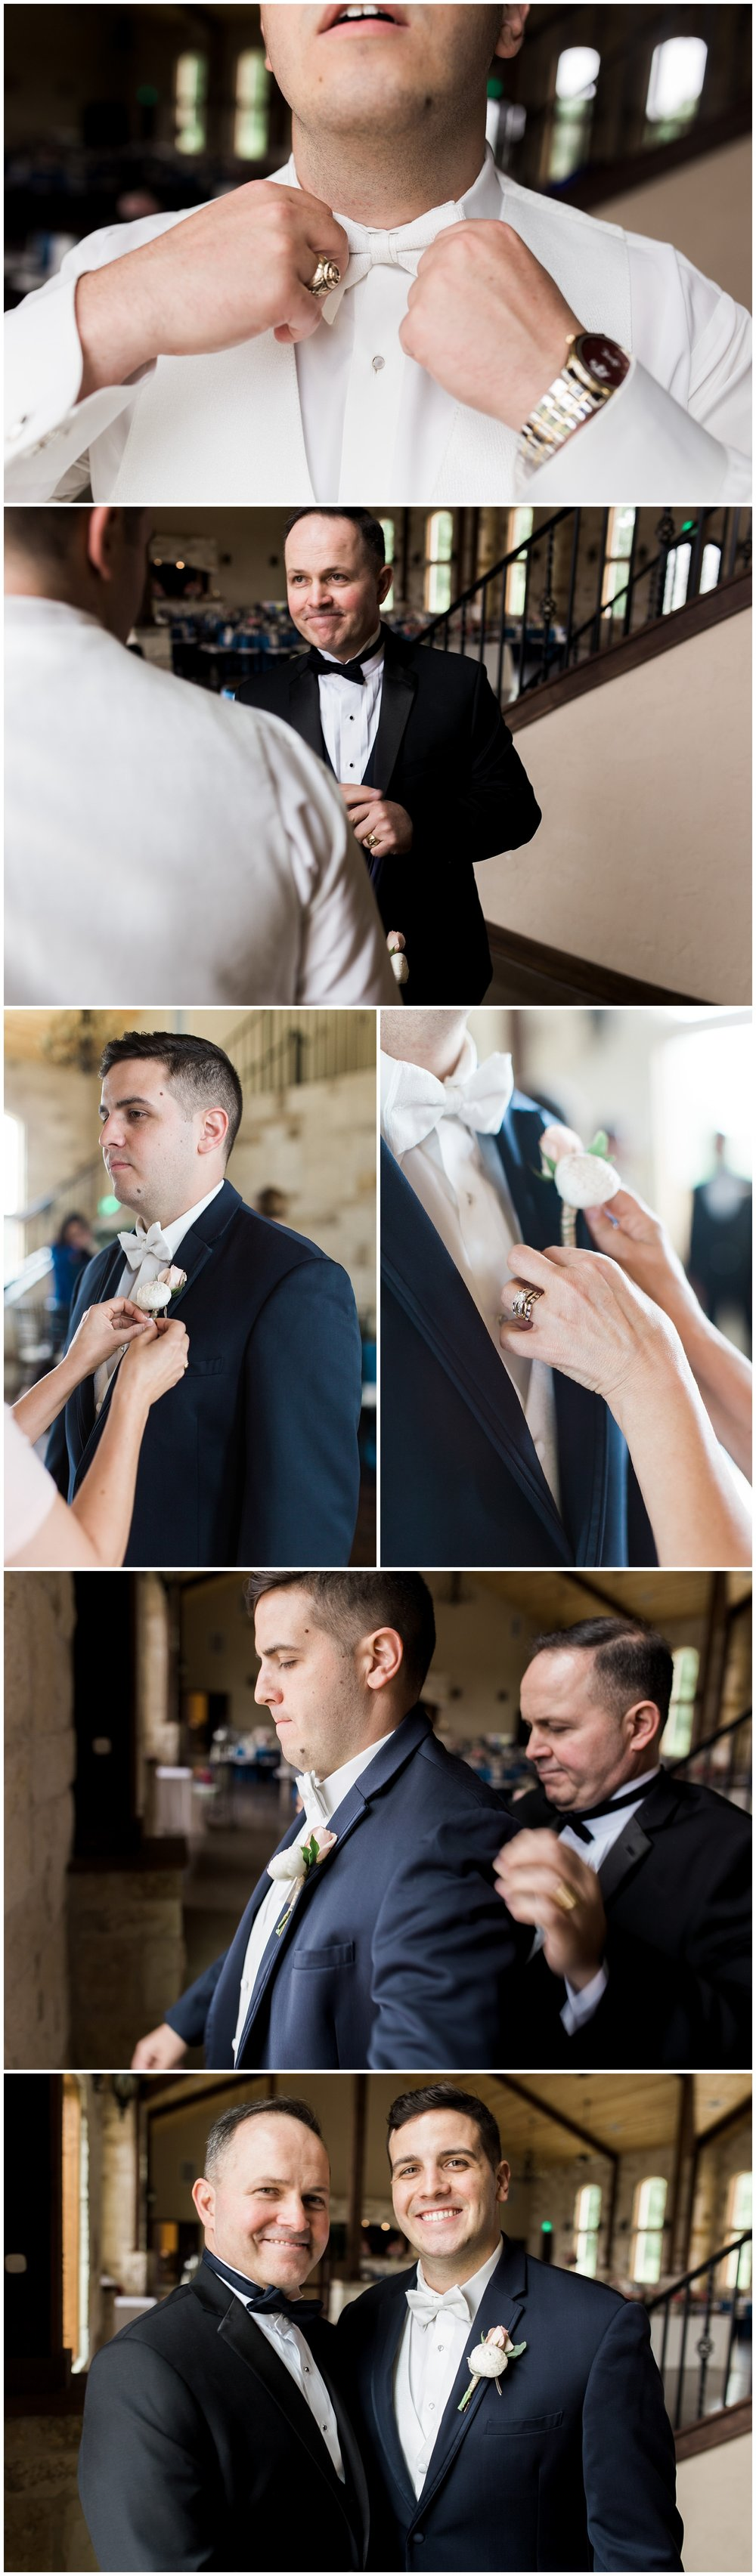 Brownstone_Reserve_Wedding_Kristina_Ross_Photography_0005.jpg